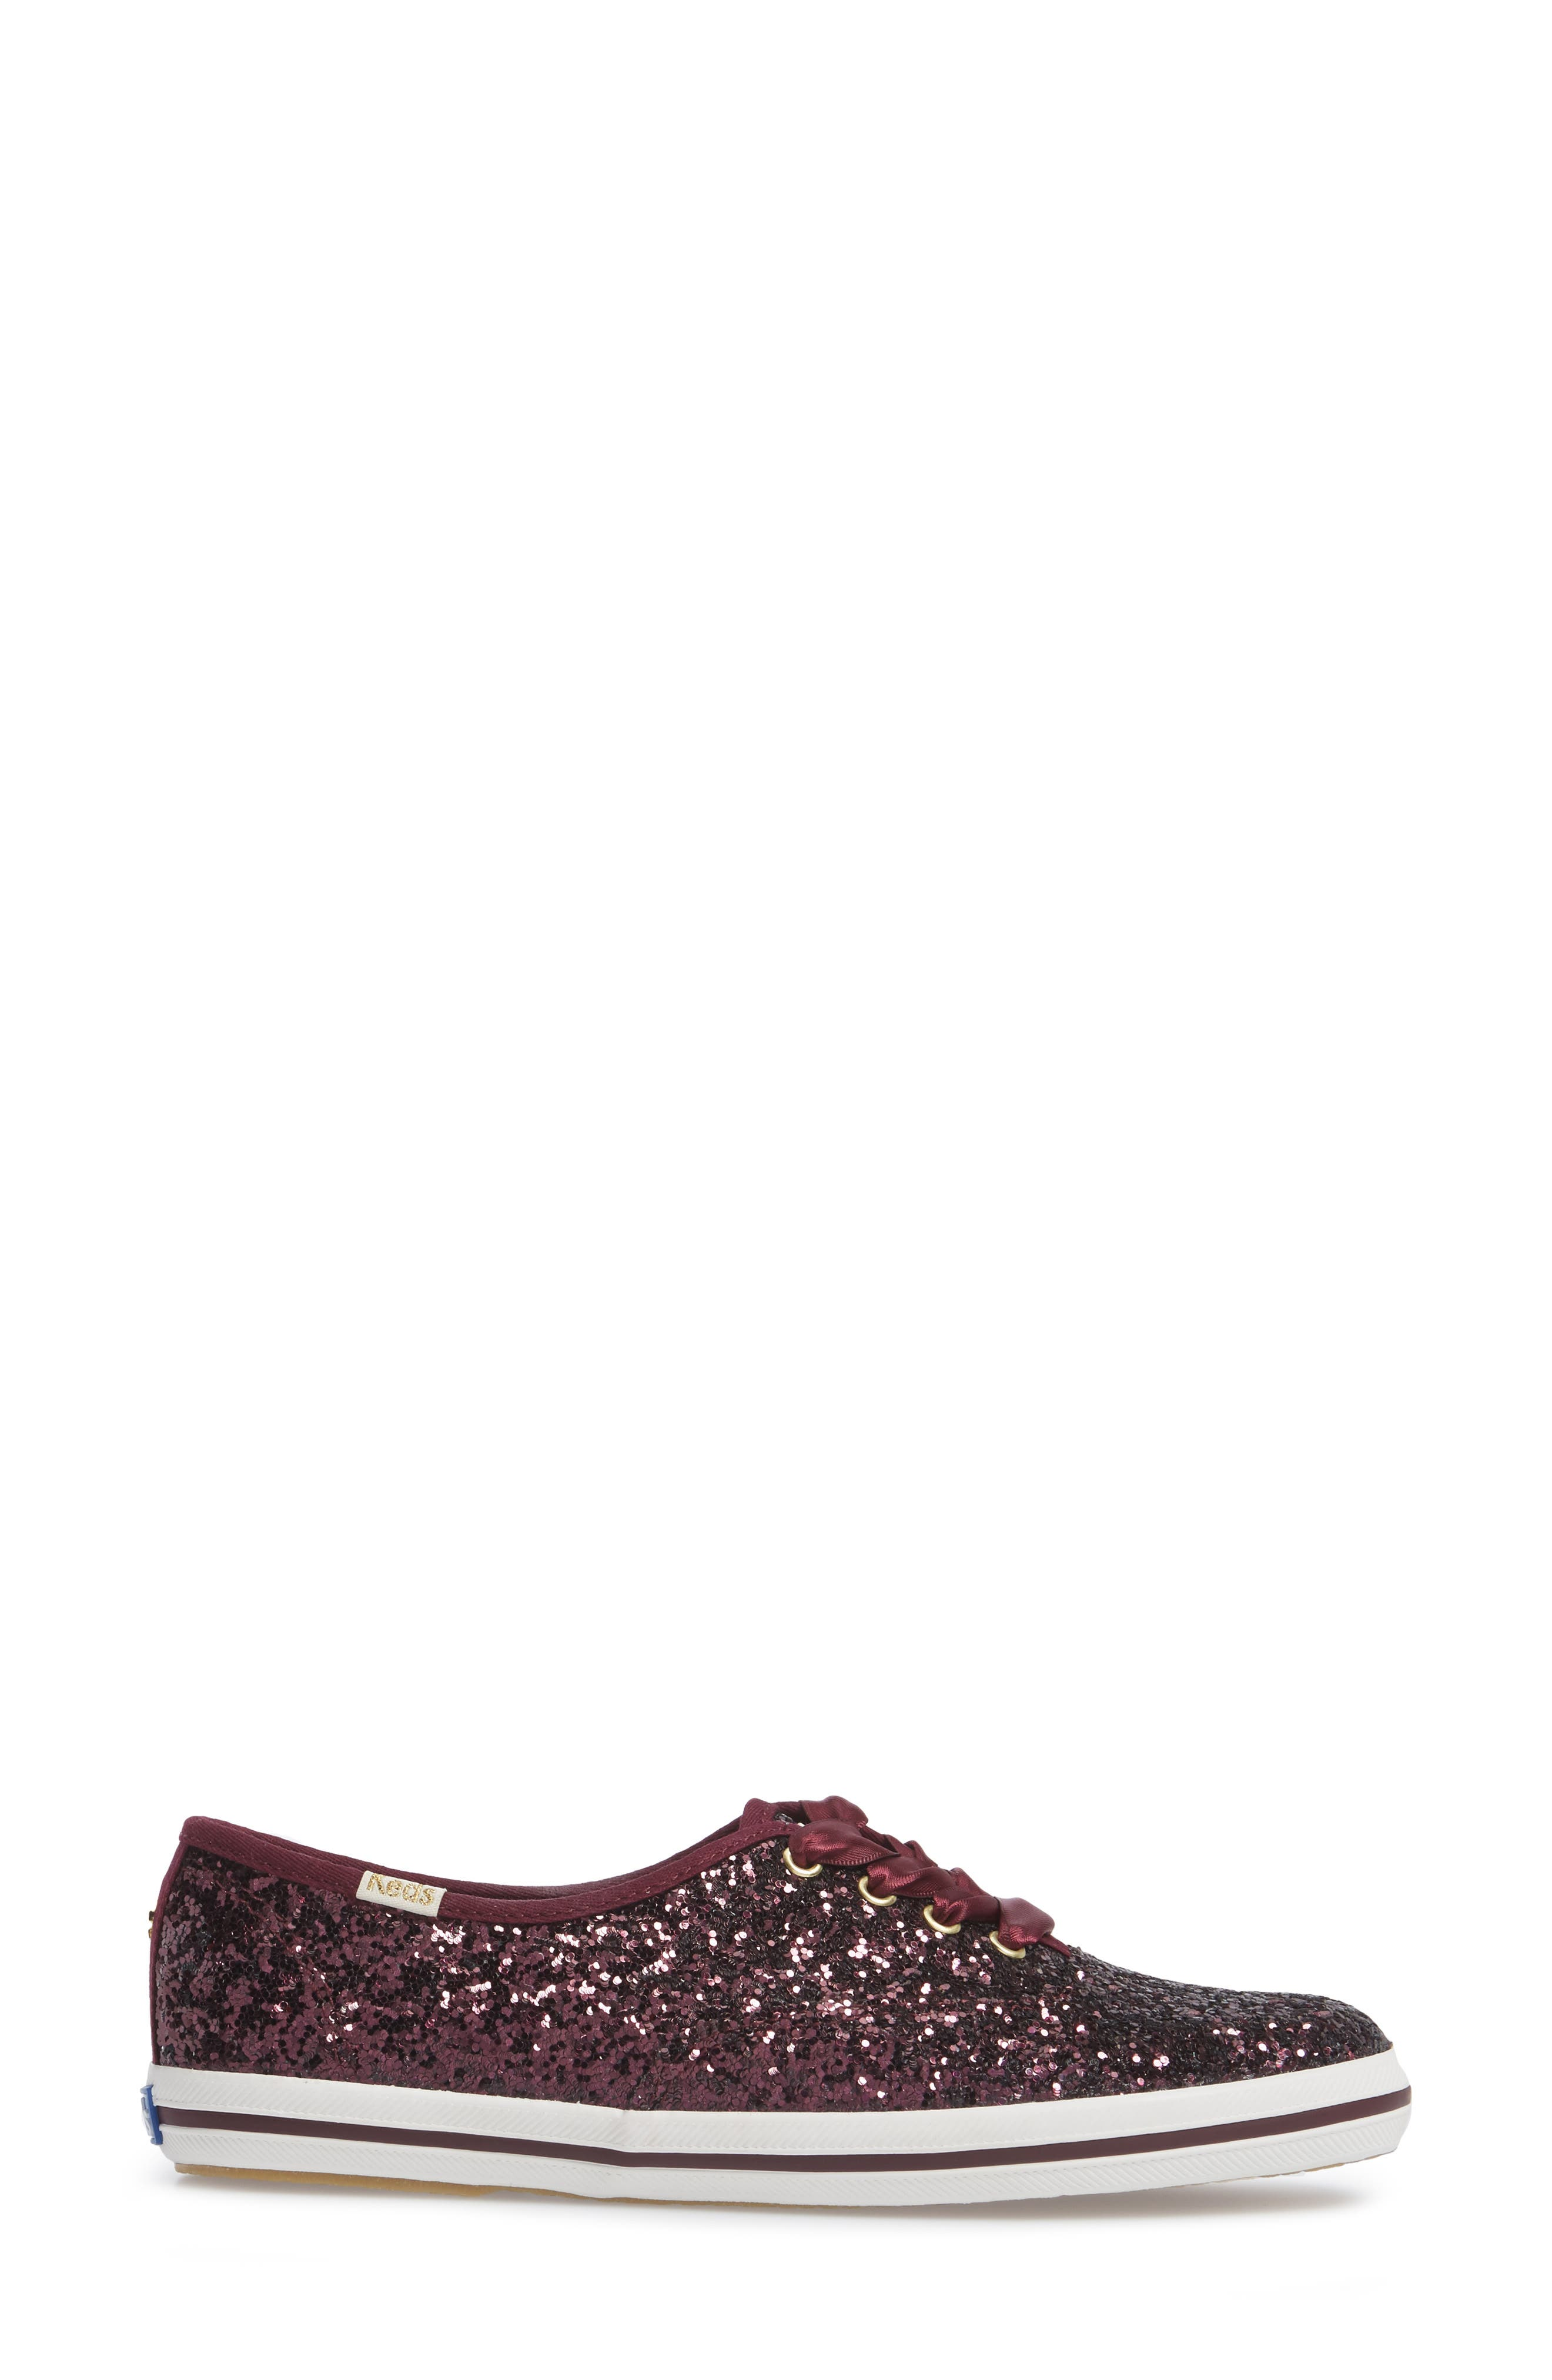 Alternate Image 3  - Keds® for kate spade new york glitter sneaker (Women)